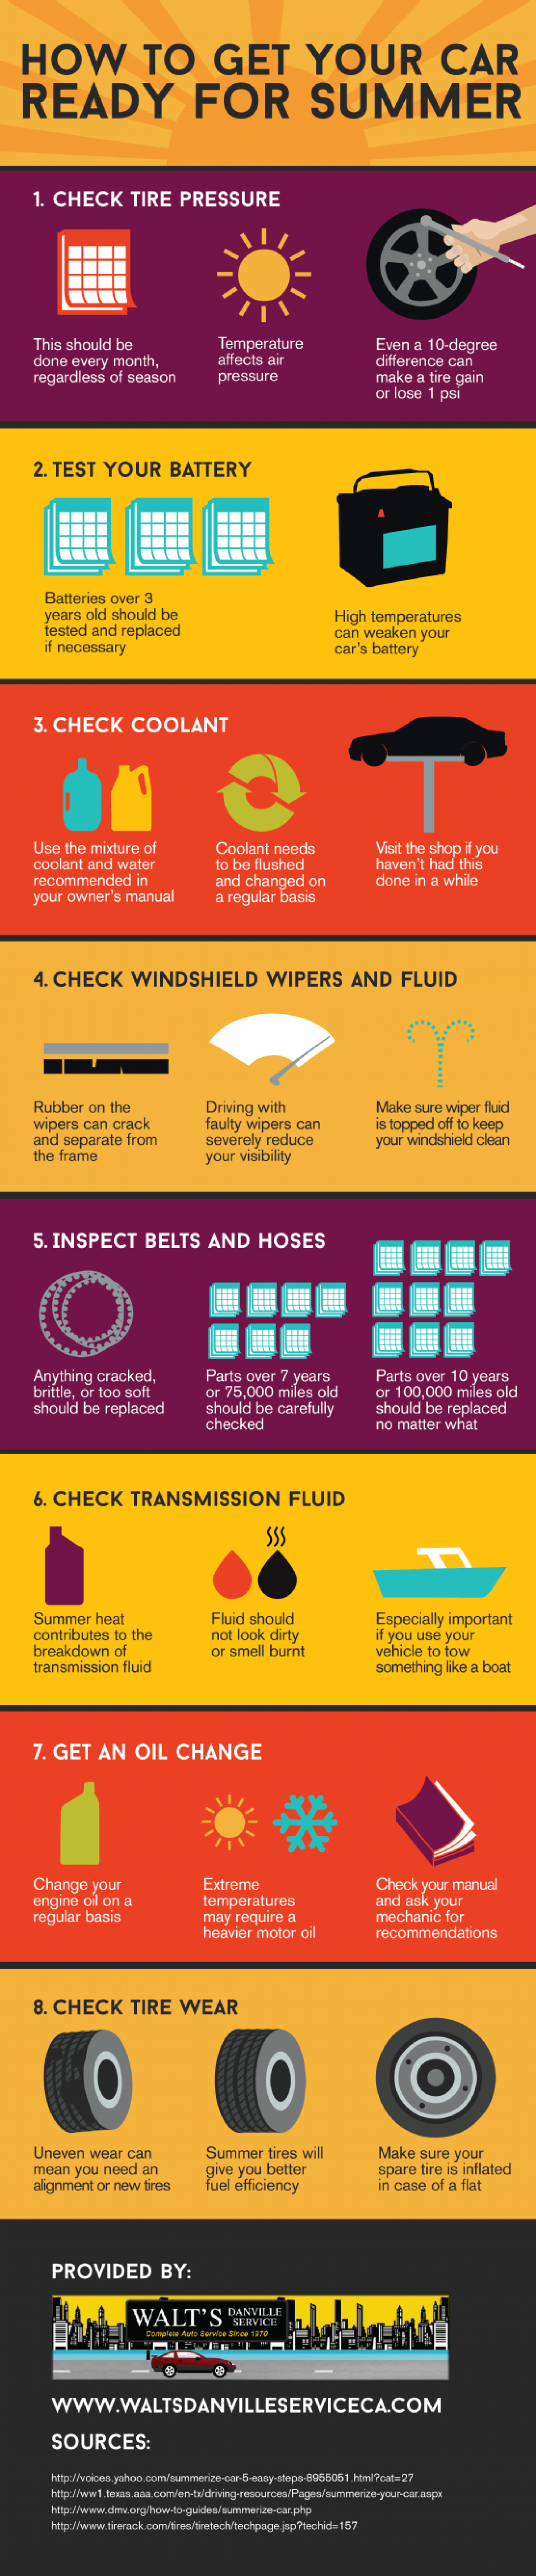 How to Get Your Car Ready for Summer Infographic